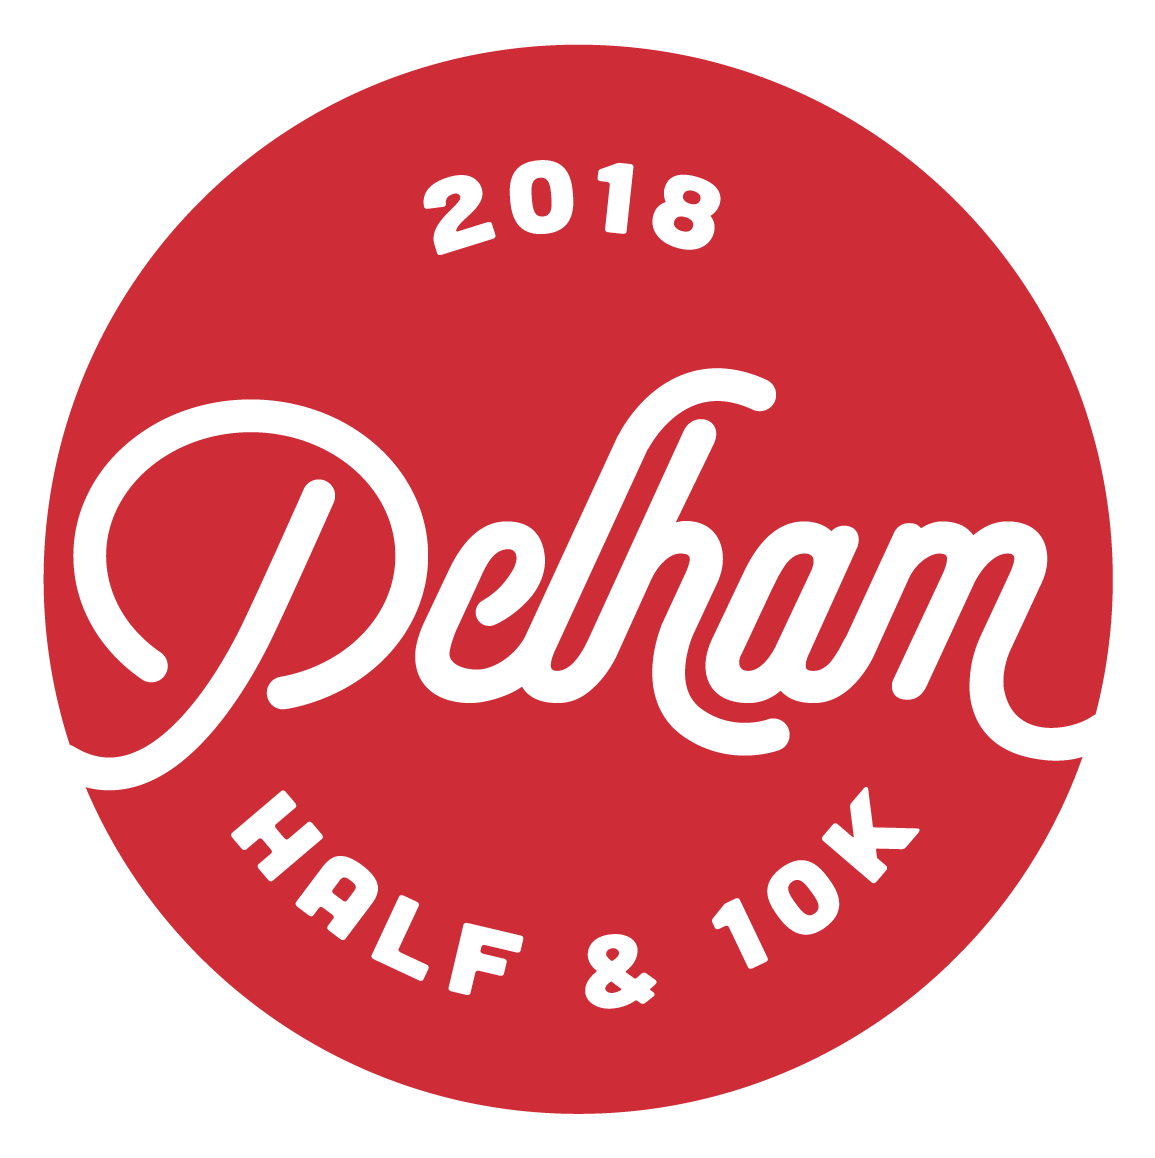 Pelham Half and 10K